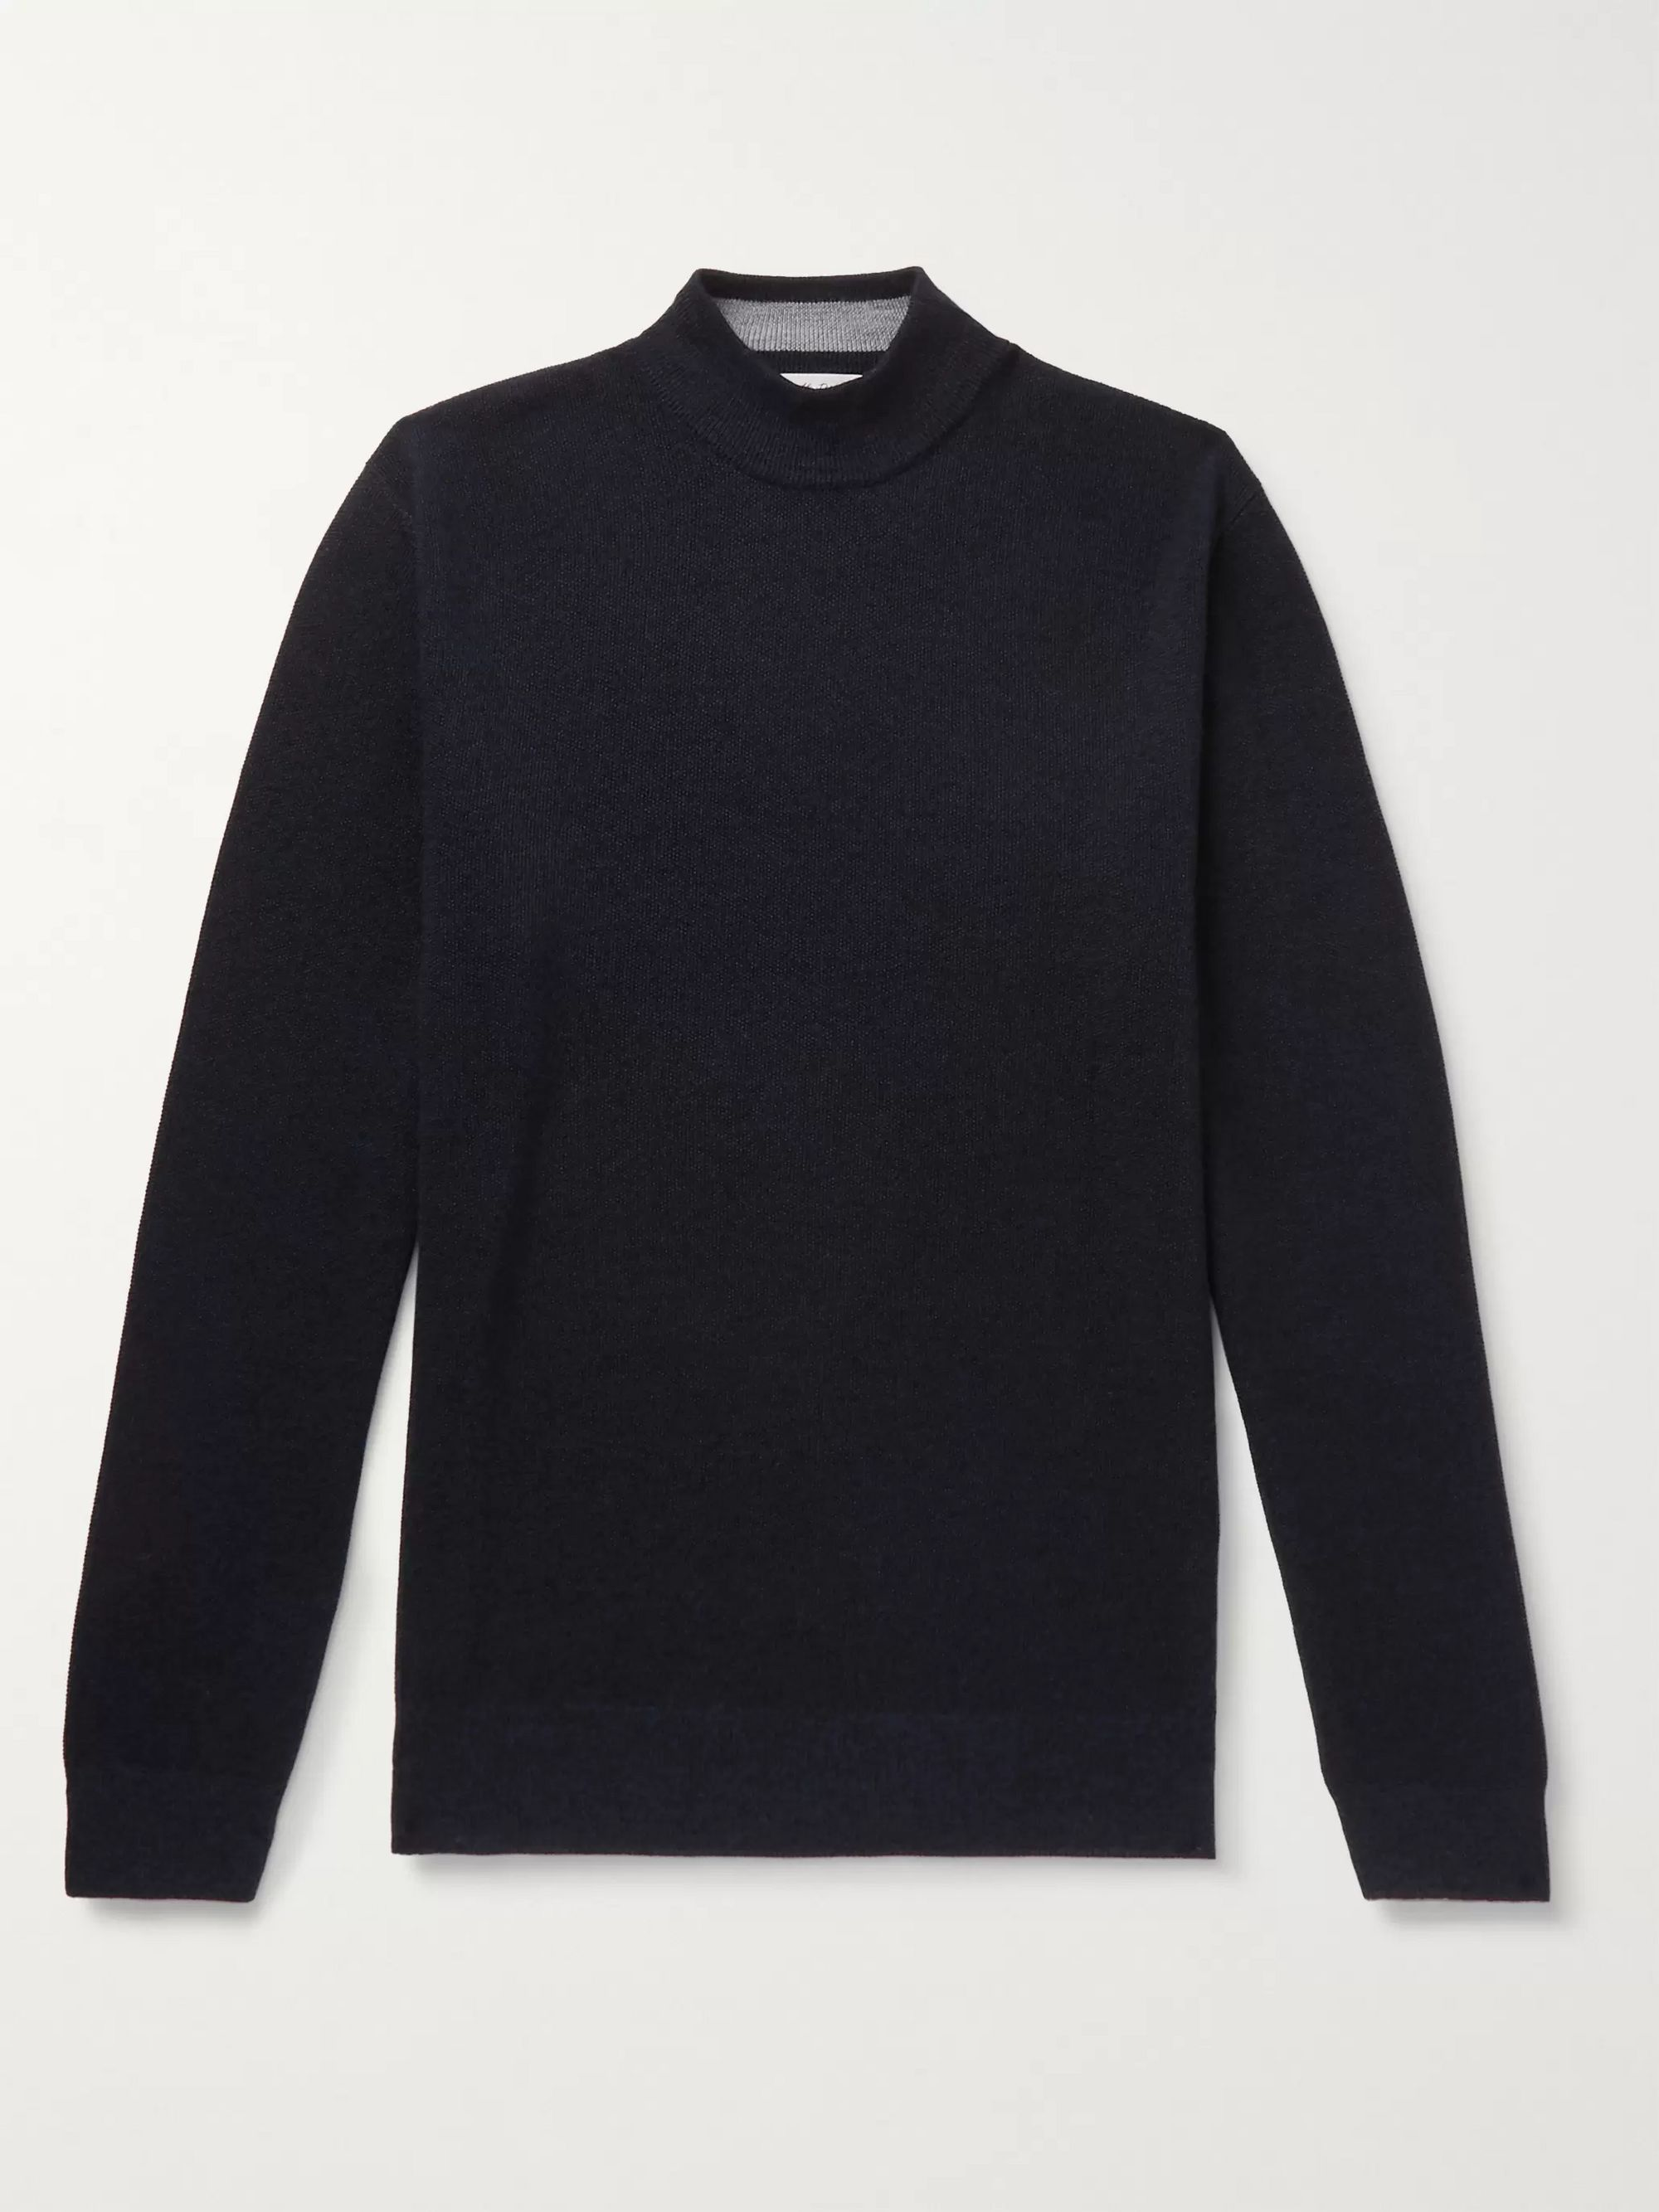 Mr P. Slim-Fit Mélange Merino Wool-Piqué Rollneck Sweater